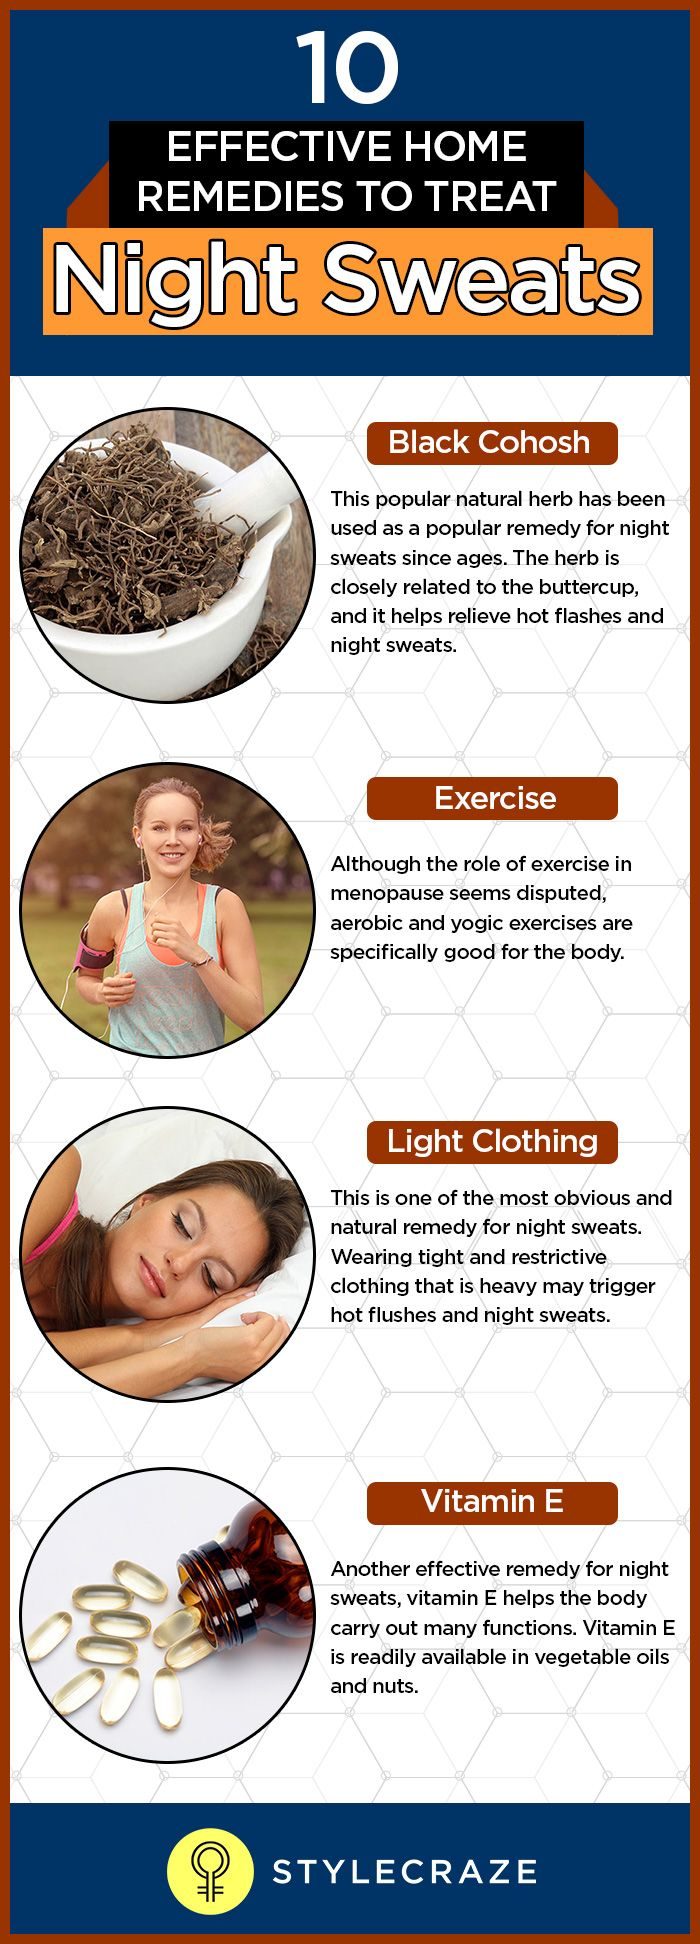 Have you ever woken up sweating in the middle of the night? And has this been robbing your peace? Night sweat can be an irksome condition and it usually is regarded as an aggressive symptom of menopause. Waking up in the middle of the night drenched in sweat is not a happy feeling at all, right?